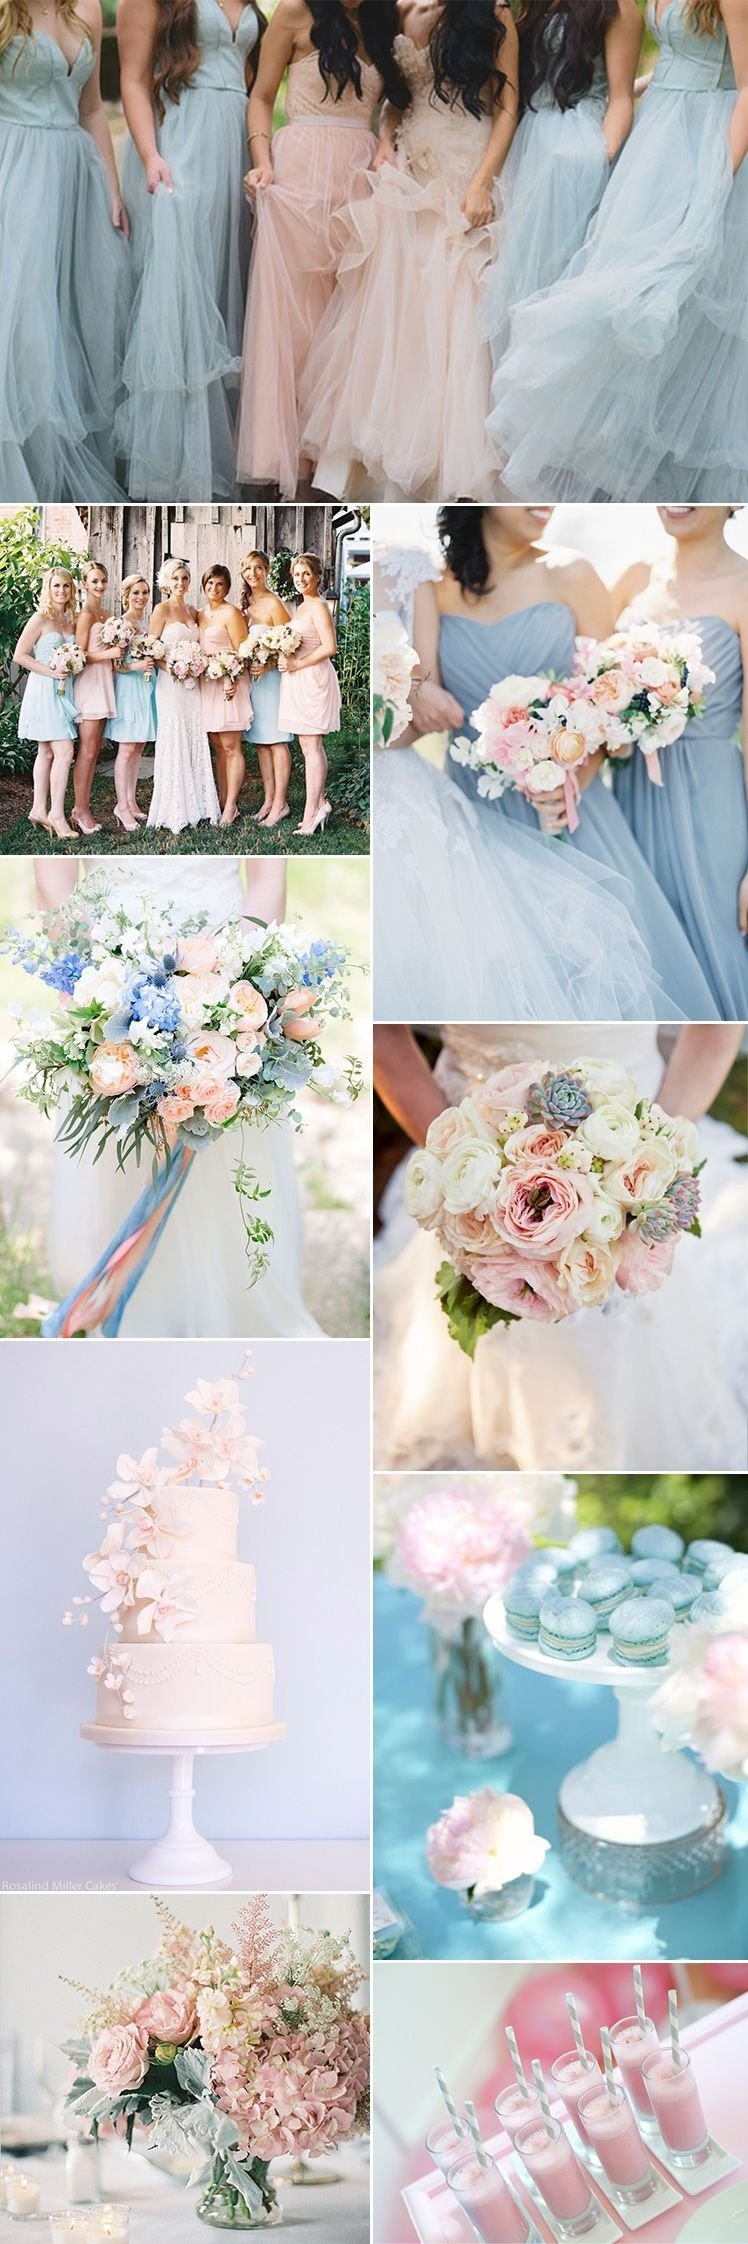 pink & blue wedding ideas inspiredpantone | rose quartz, pantone